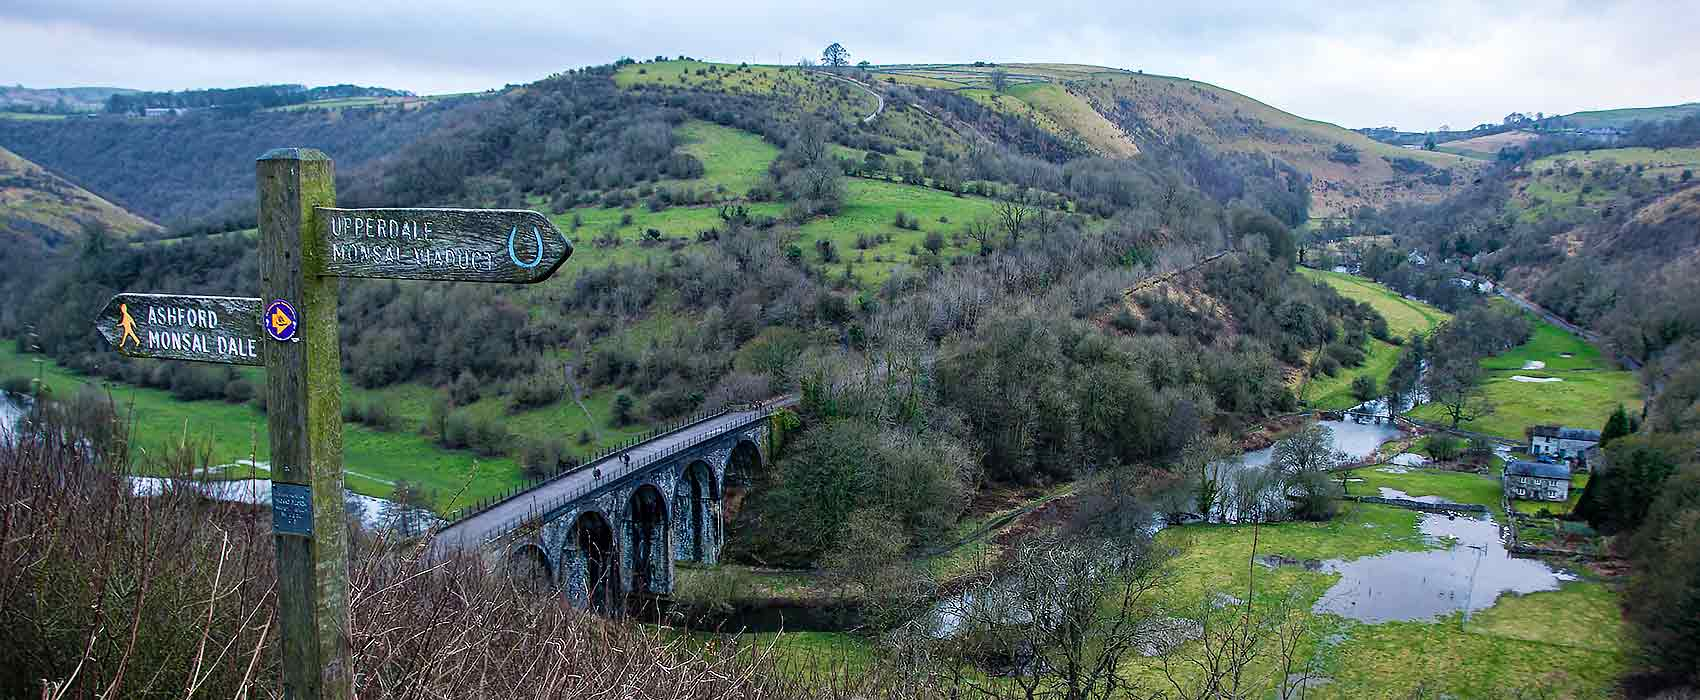 Monsal-Head-Peak-districtjpg